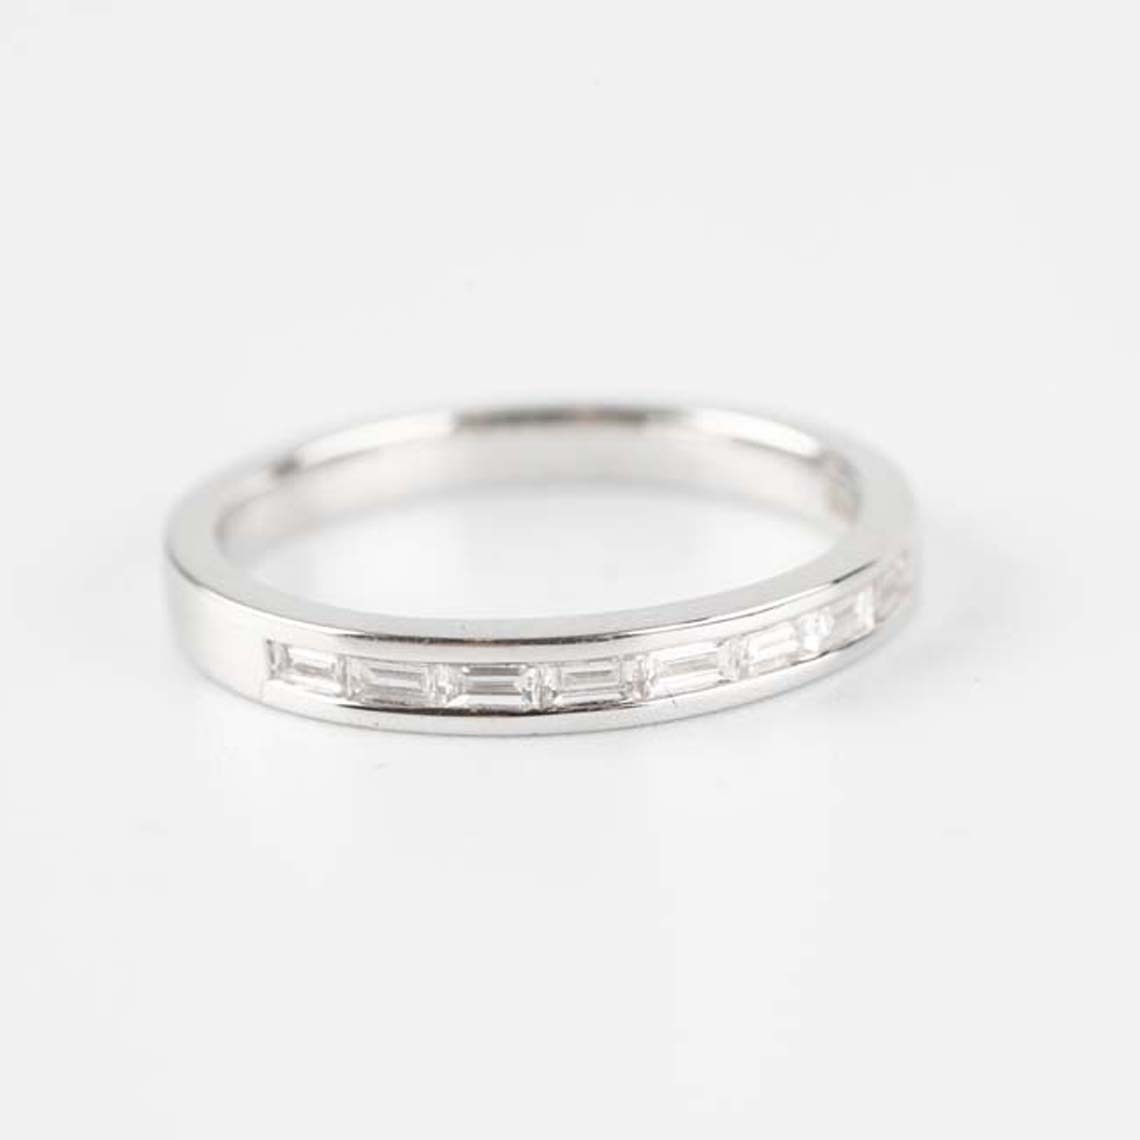 Eternity/wedding ring